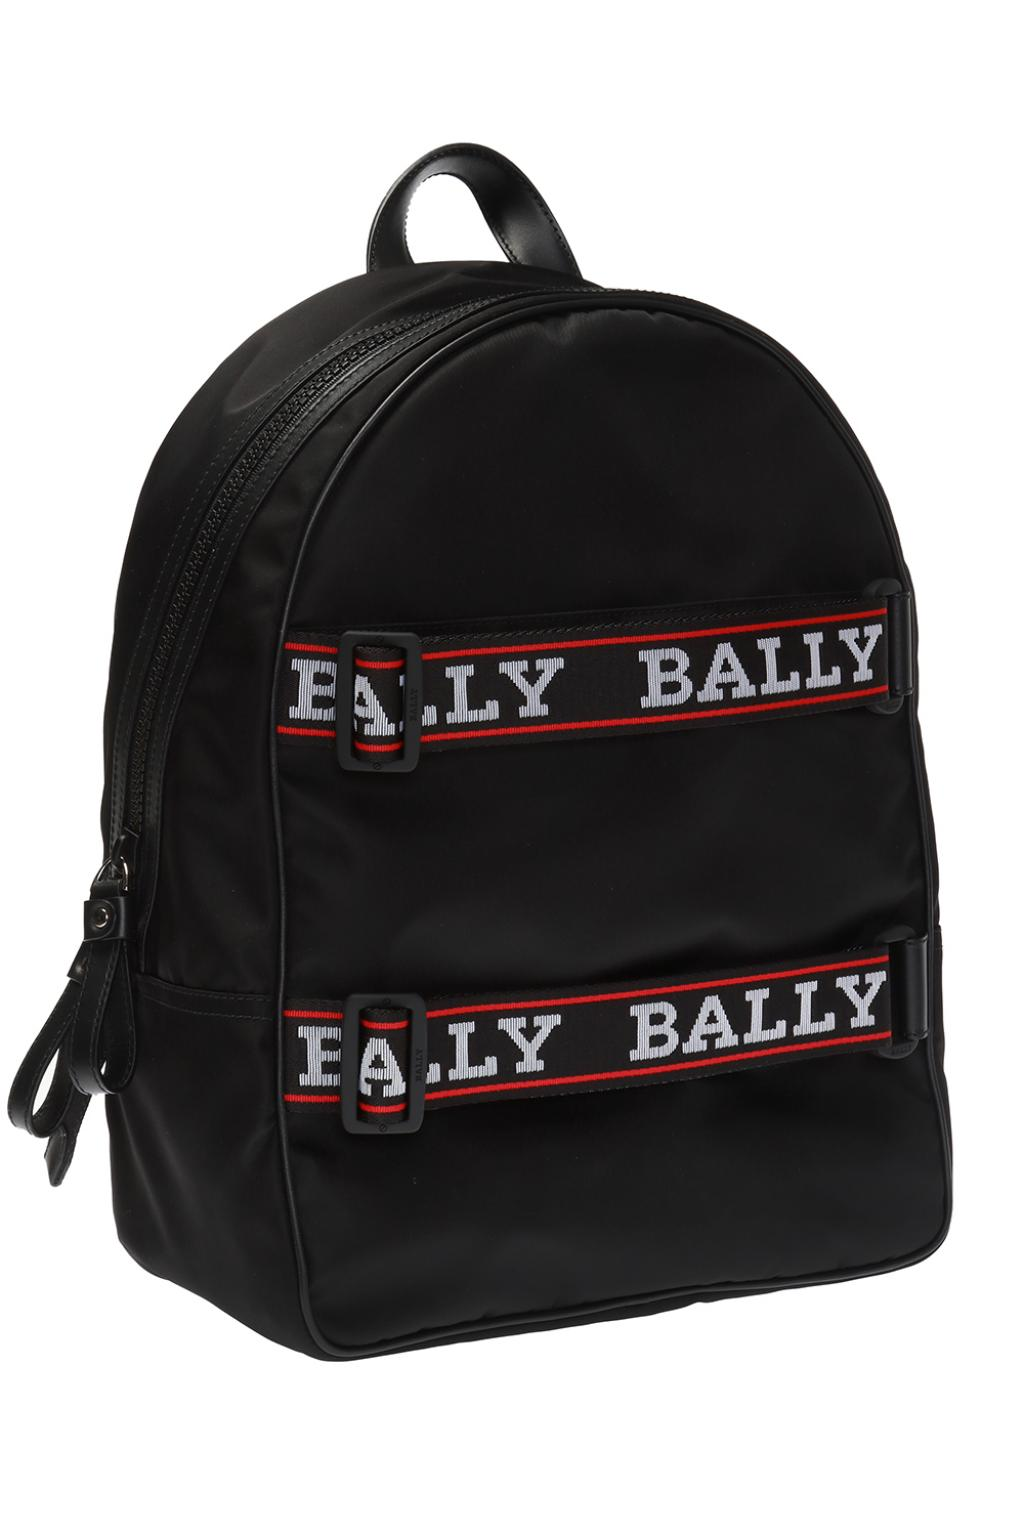 Bally 'Flip' backpack